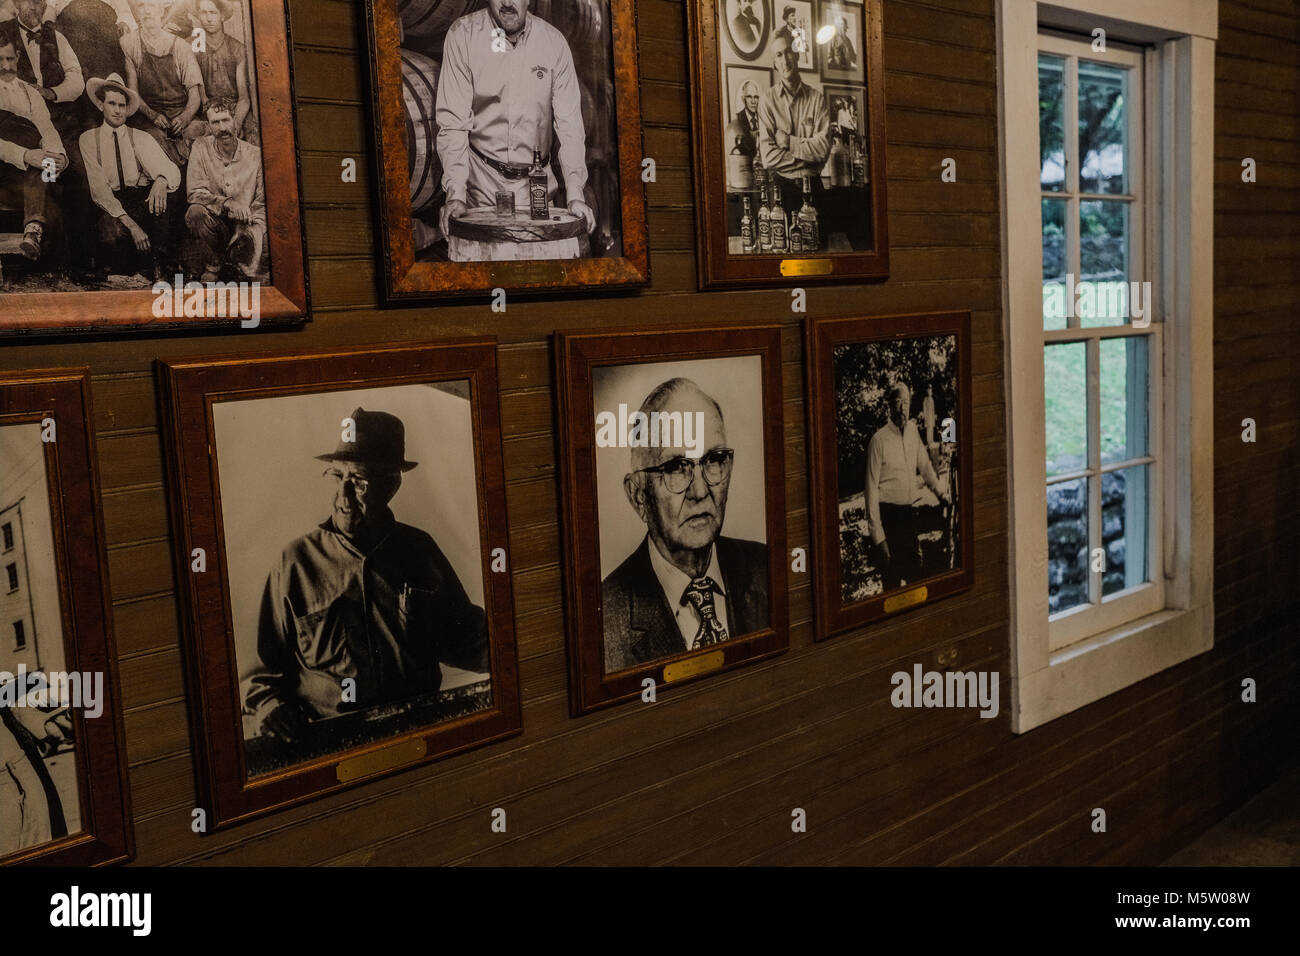 Historic photos in frames on a wall at the Jack Daniels Distillery, Lynchburg, Tennessee, North America - Stock Image